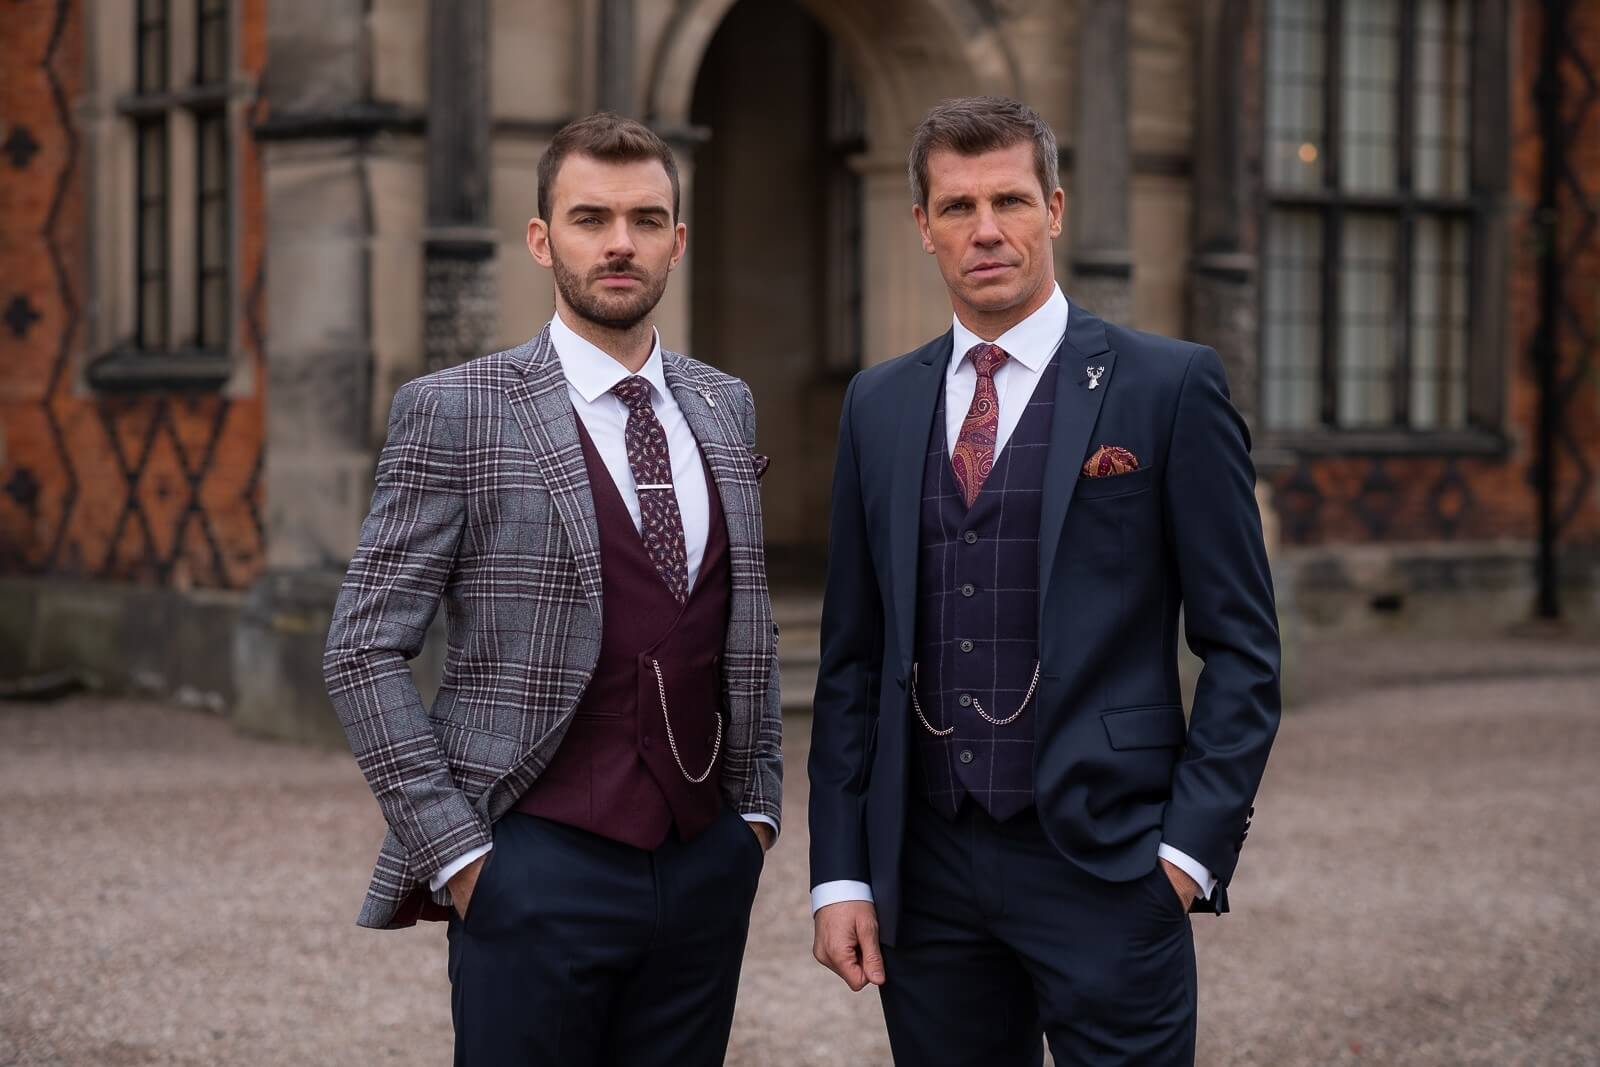 Wedding Trends 2019 - Tweed Suits for Weddings Whitfield